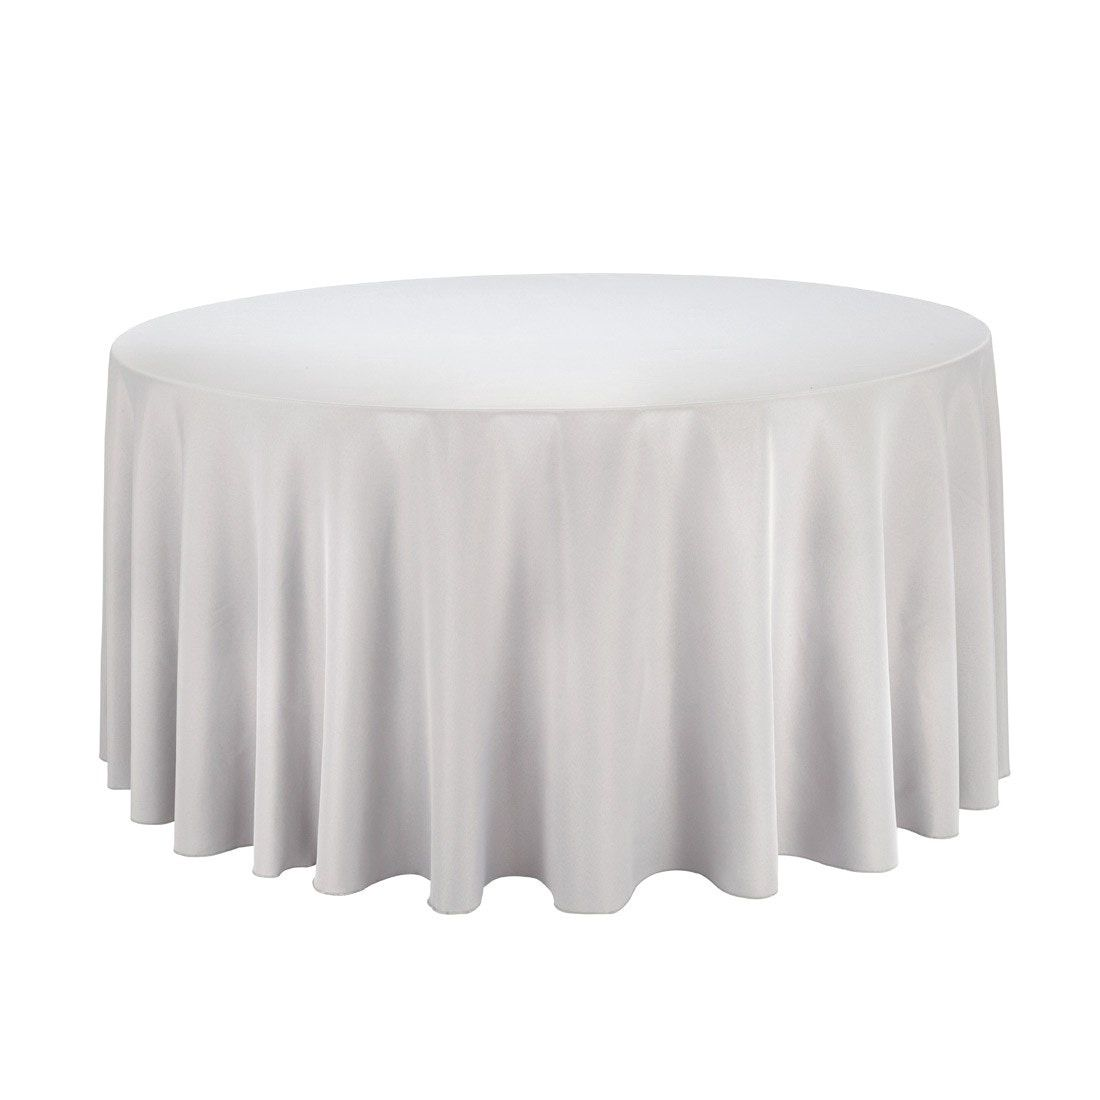 100+ 108 Inch Round Tablecloth Fits What Size Table   Best Home Office  Furniture Check